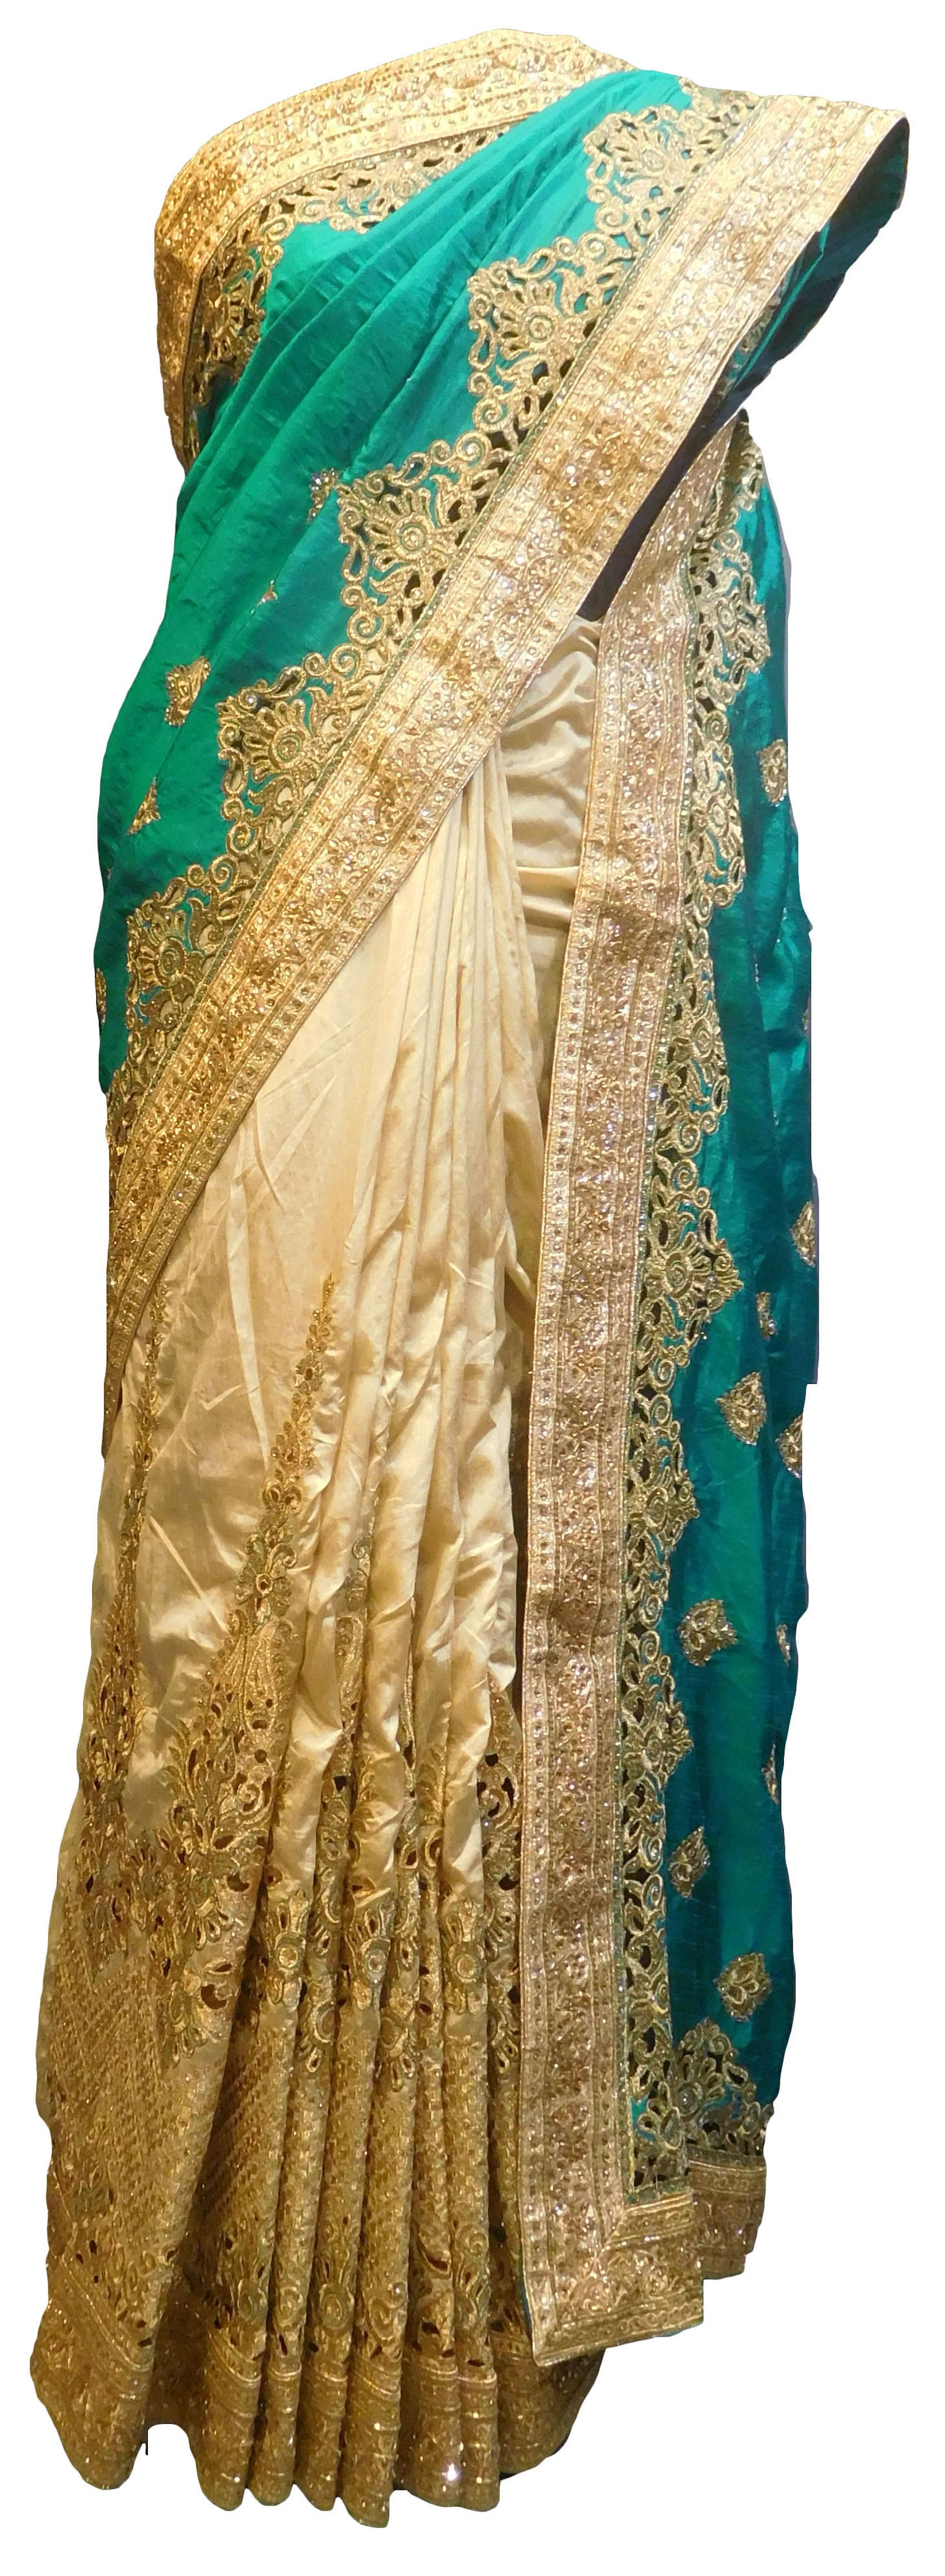 SMSAREE Turquoise & Cream Designer Wedding Partywear Silk Cutdana Zari & Stone Hand Embroidery Work Bridal Saree Sari With Blouse Piece E844